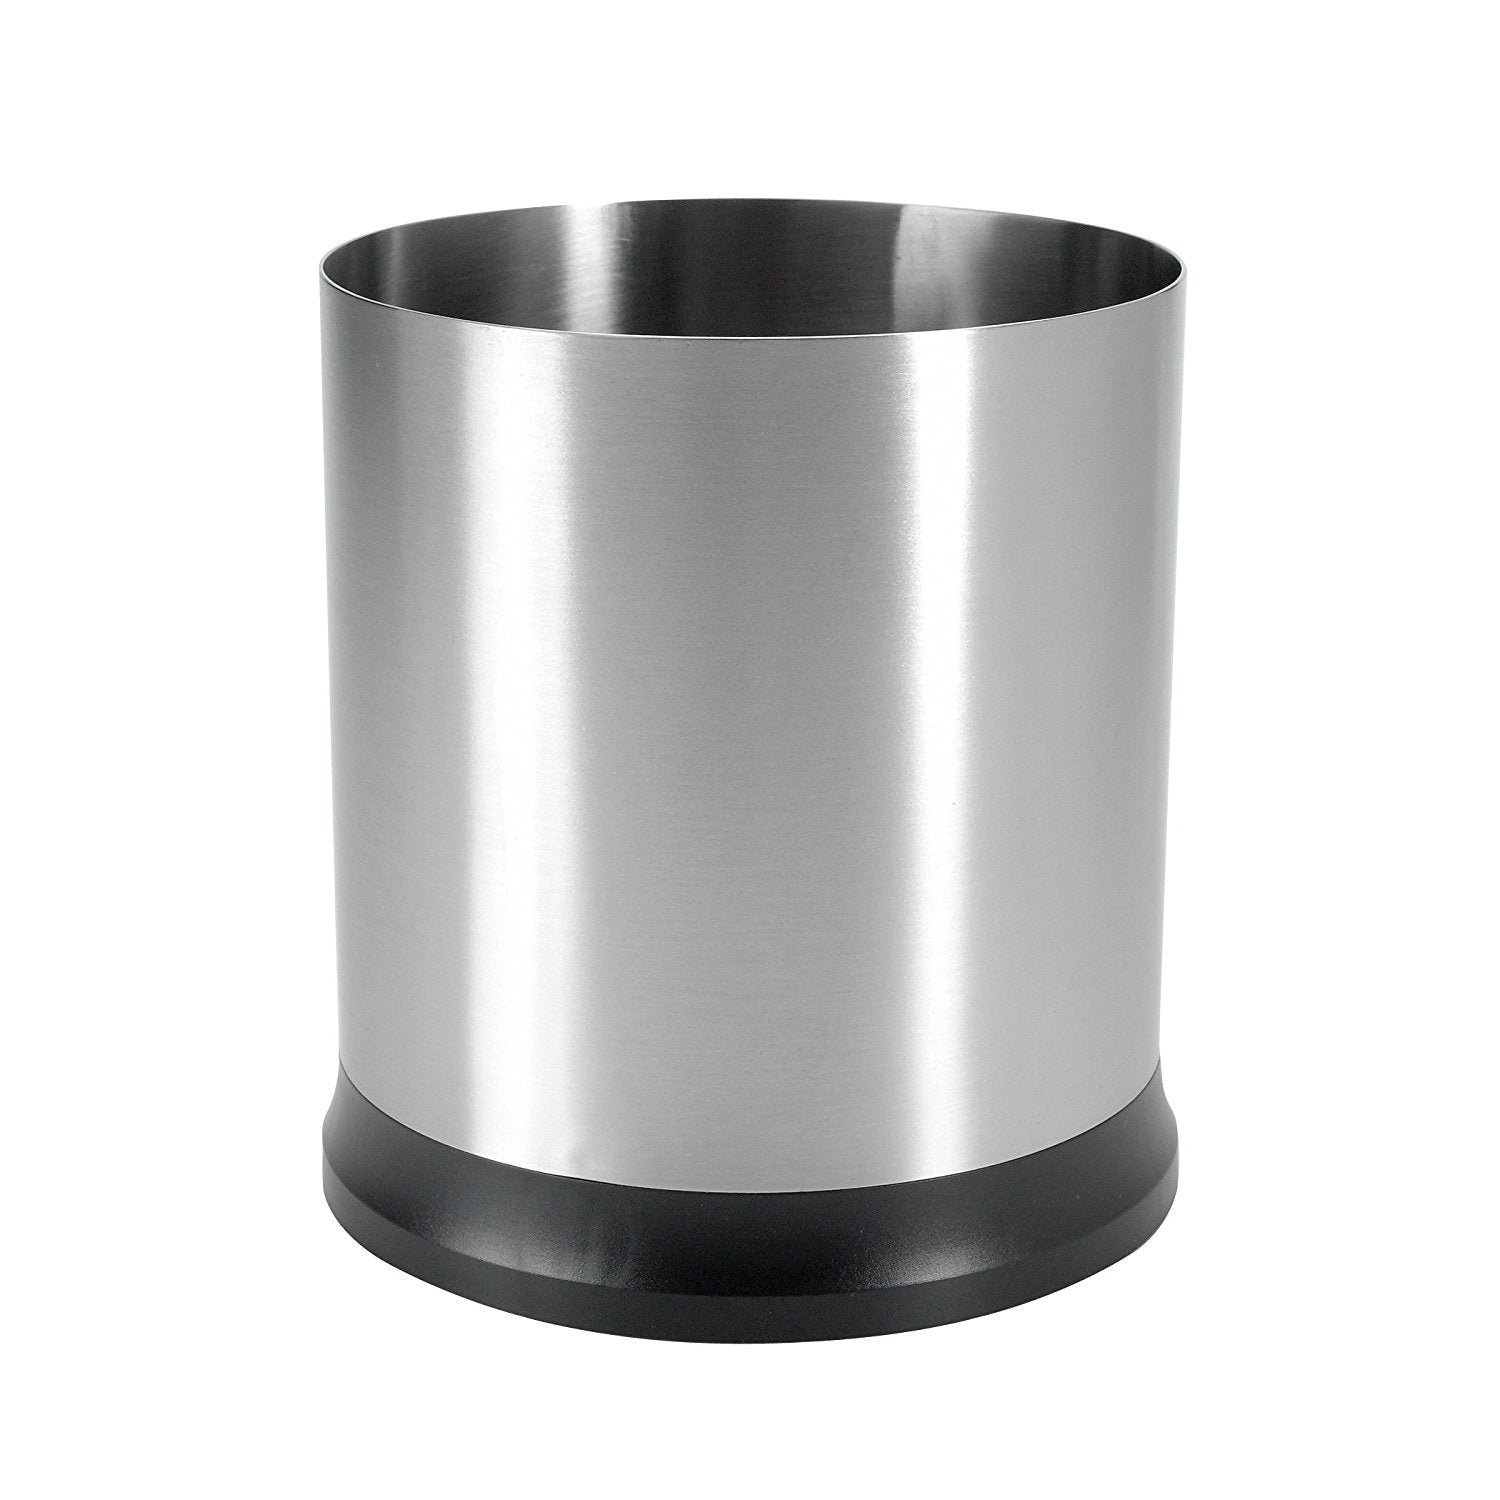 HMC Good Grips Stainless Steel Rotating Utensil Holder